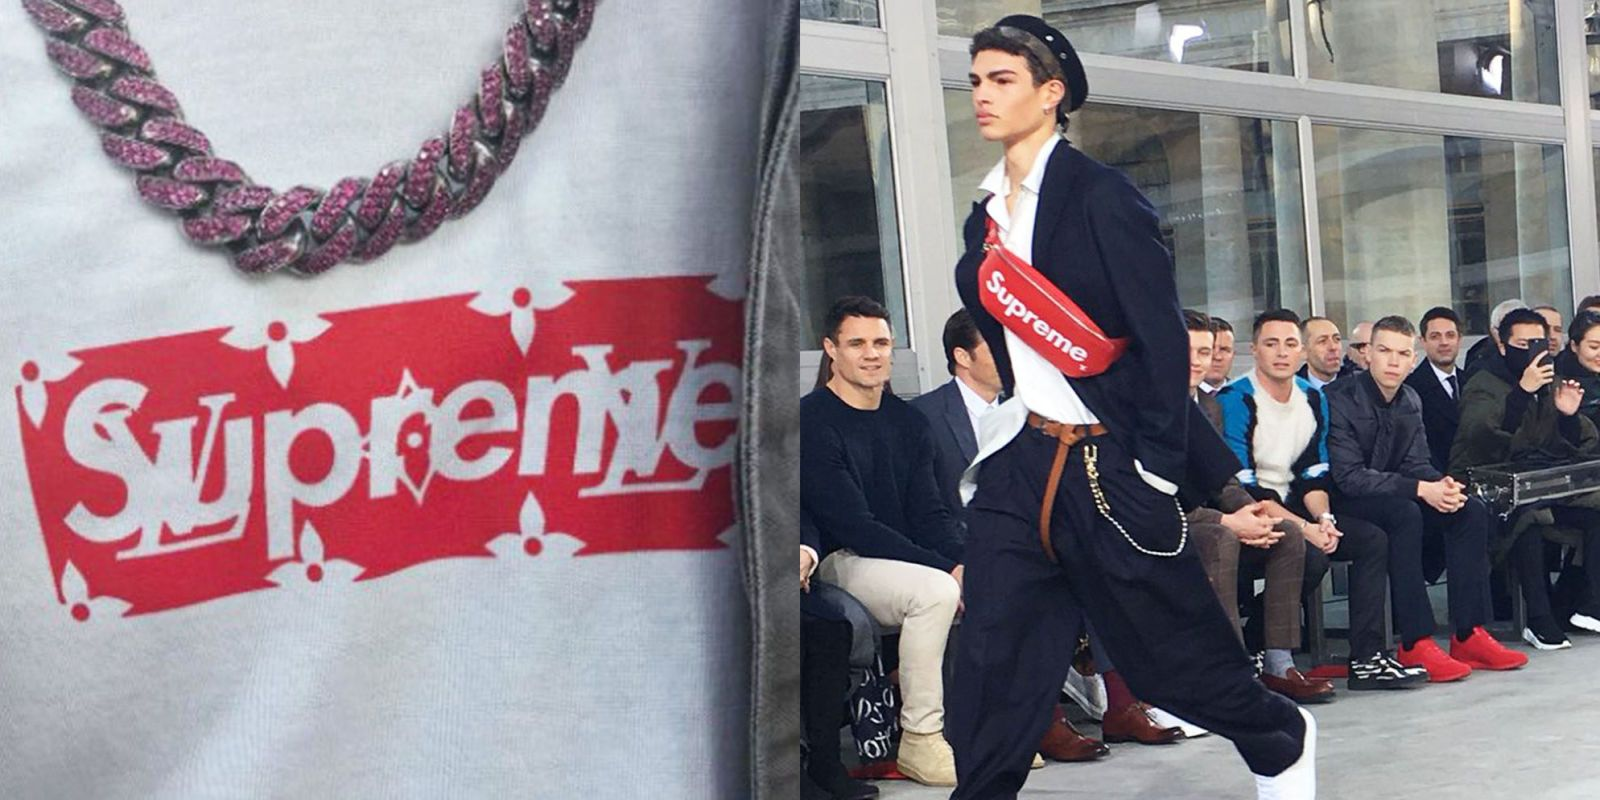 That Supreme x Louis Vuitton Collaboration Is Real